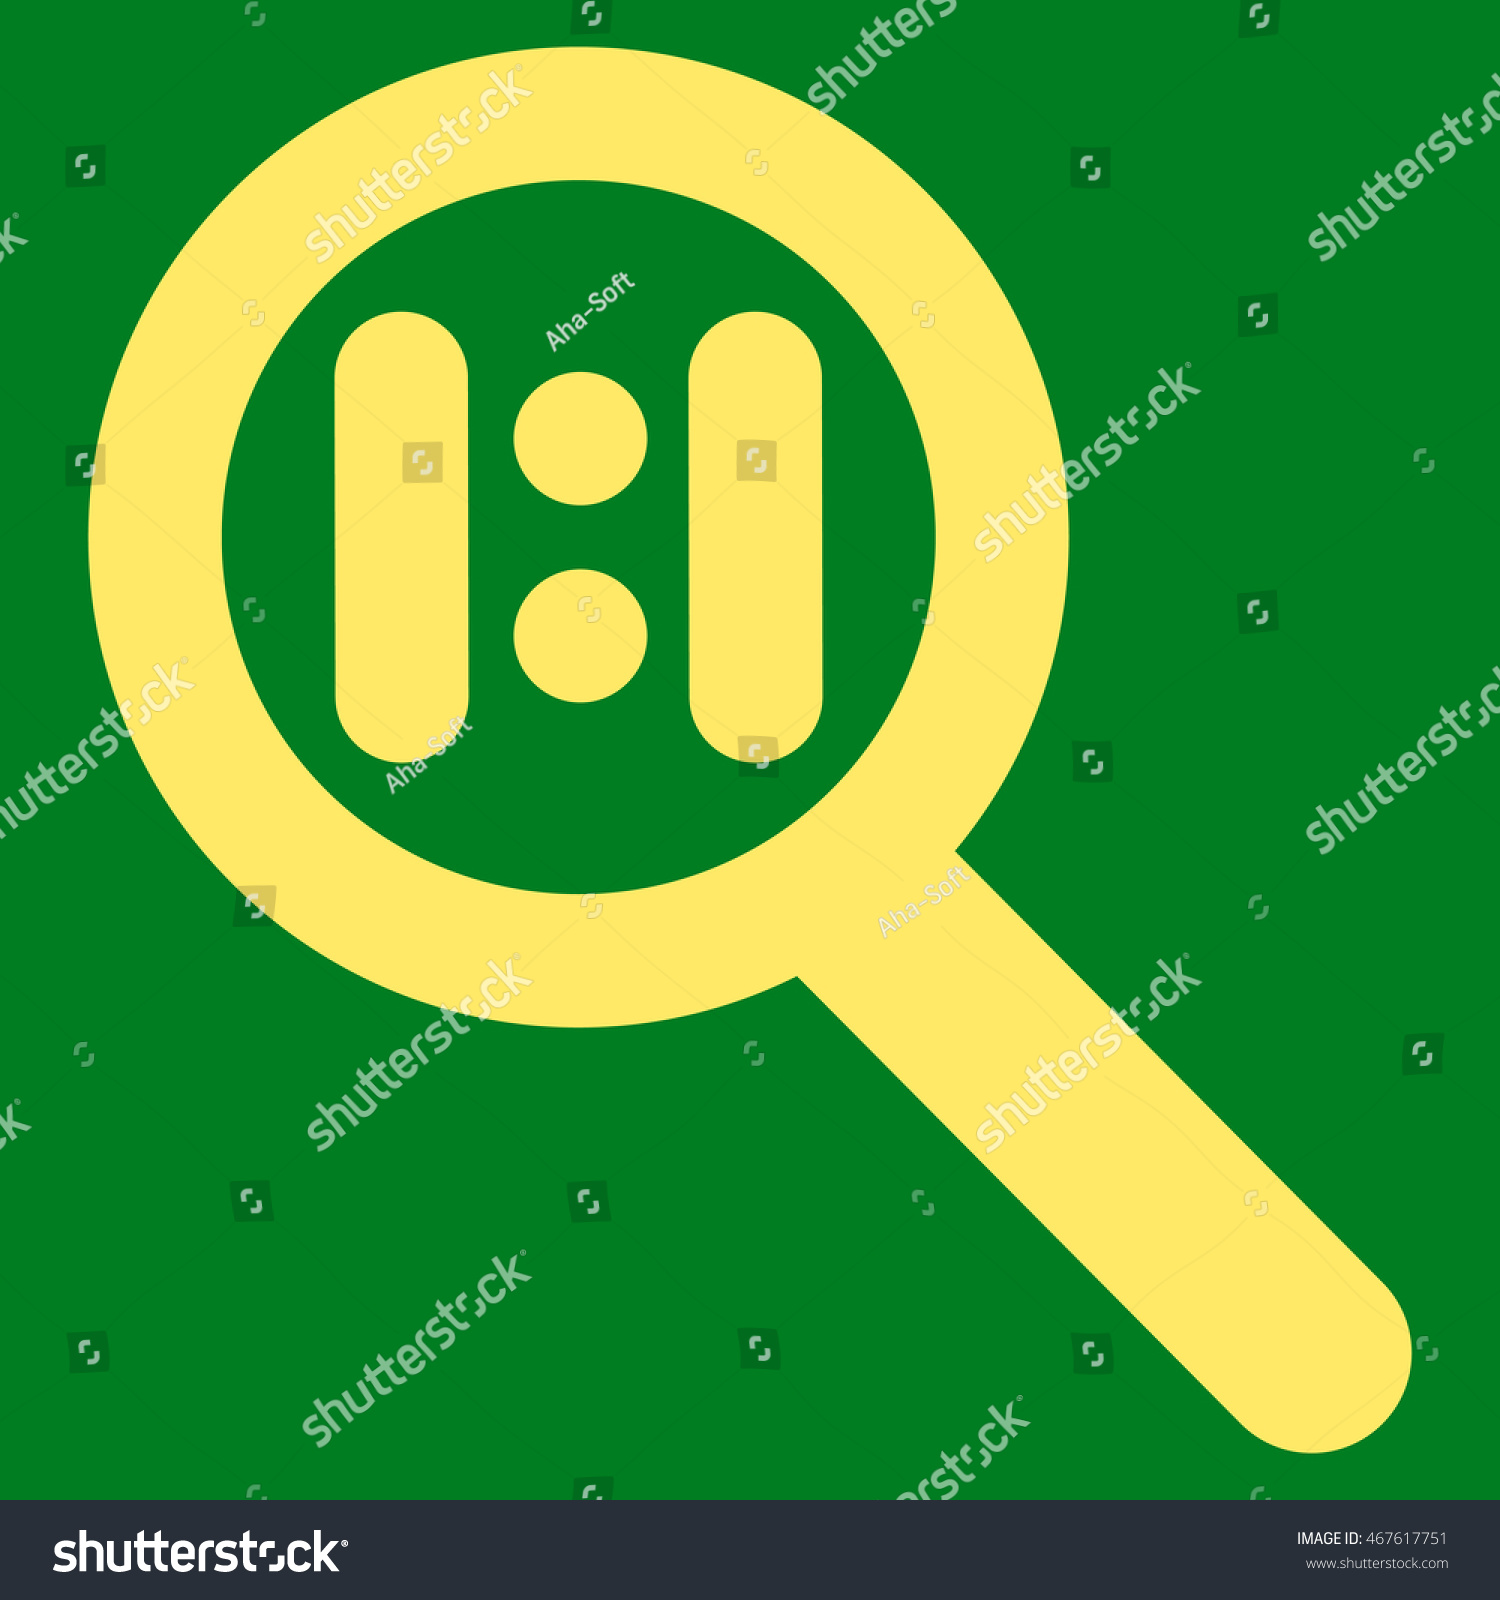 Zoom Actual Scale Glyph Icon Style Stock Illustration 467617751 ...